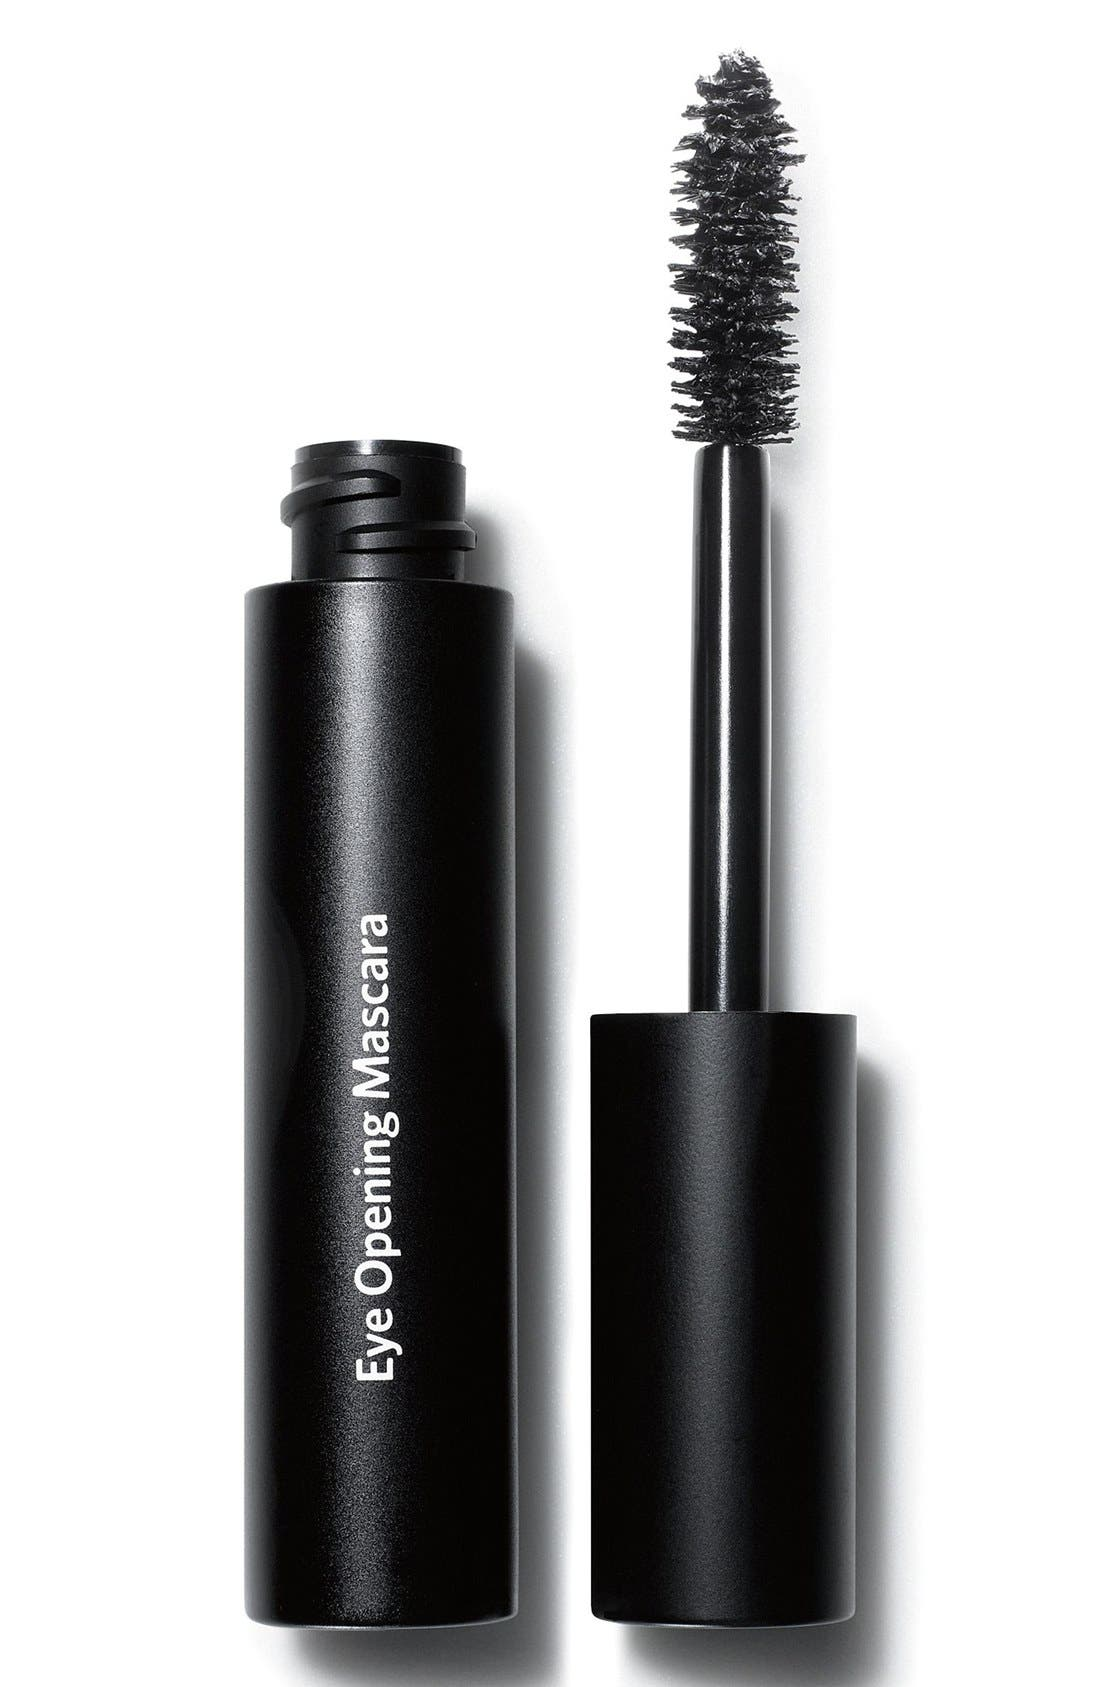 Bobbi Brown 'Eye Opening' Mascara